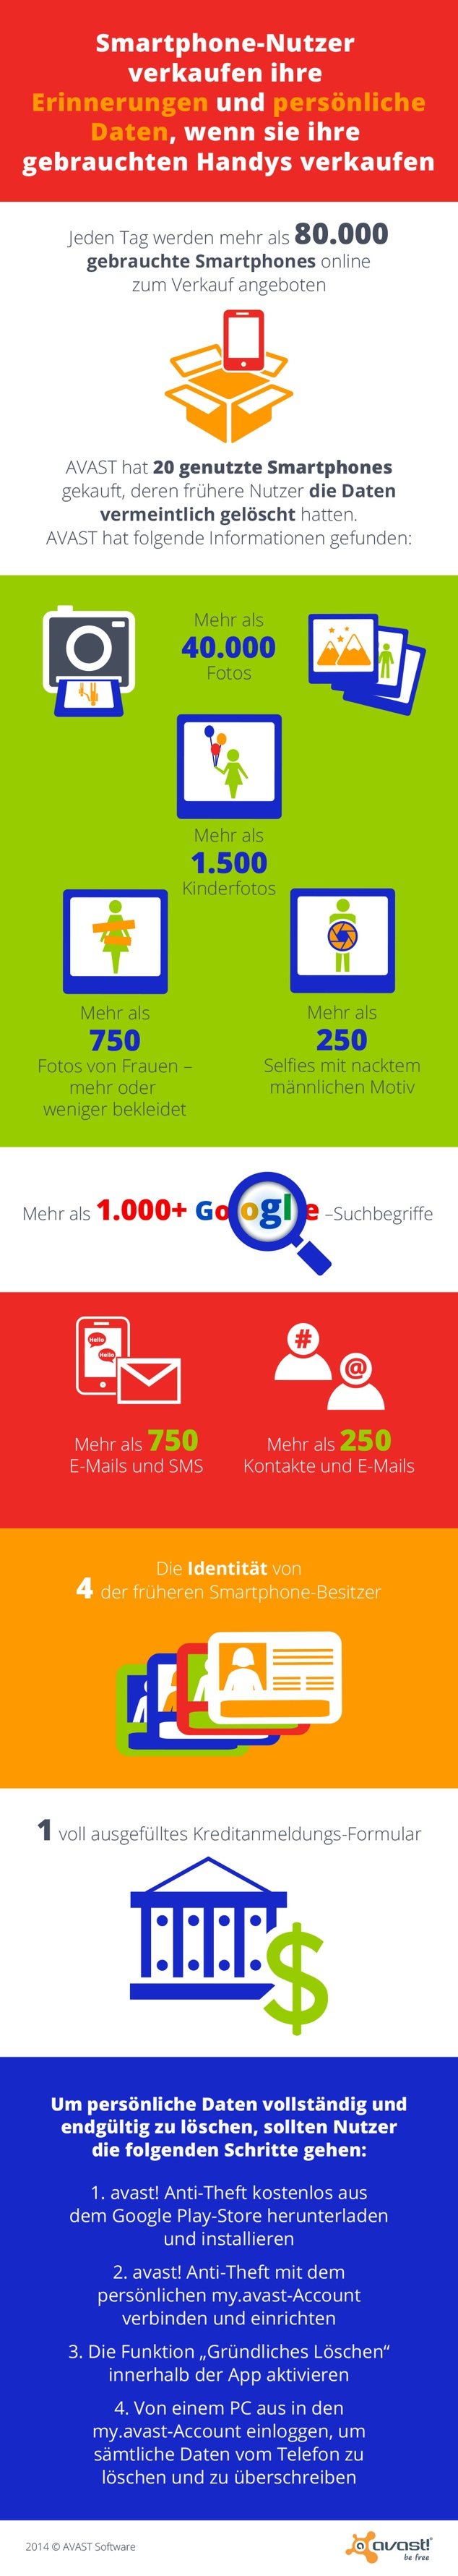 eBay infograph German July 2014